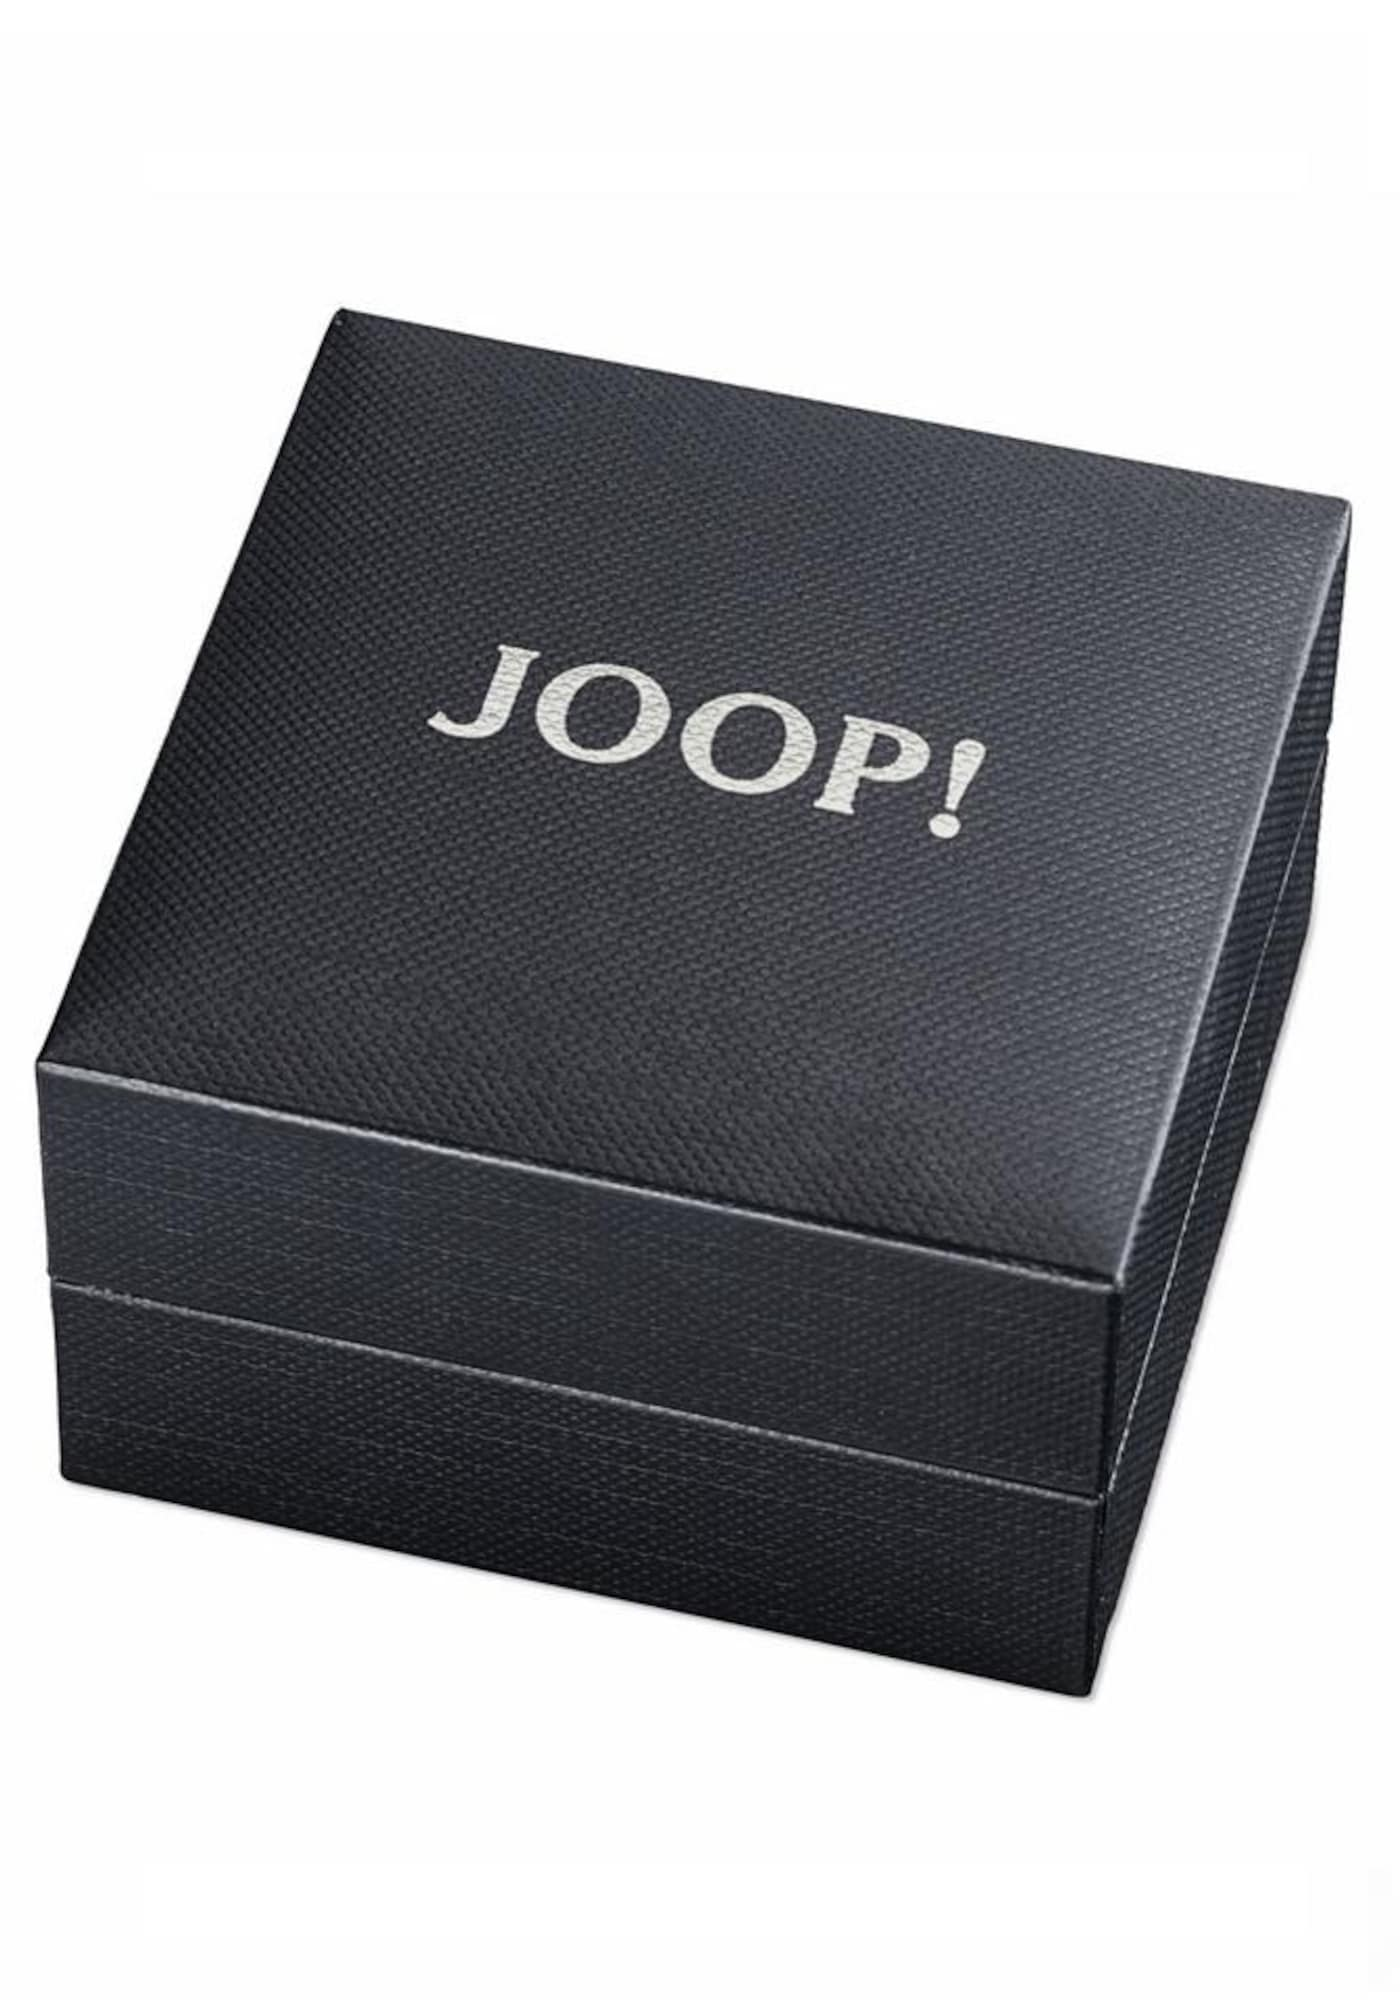 joop! -  Fingerring »2027720, 2027723, 2027724, 2027727«